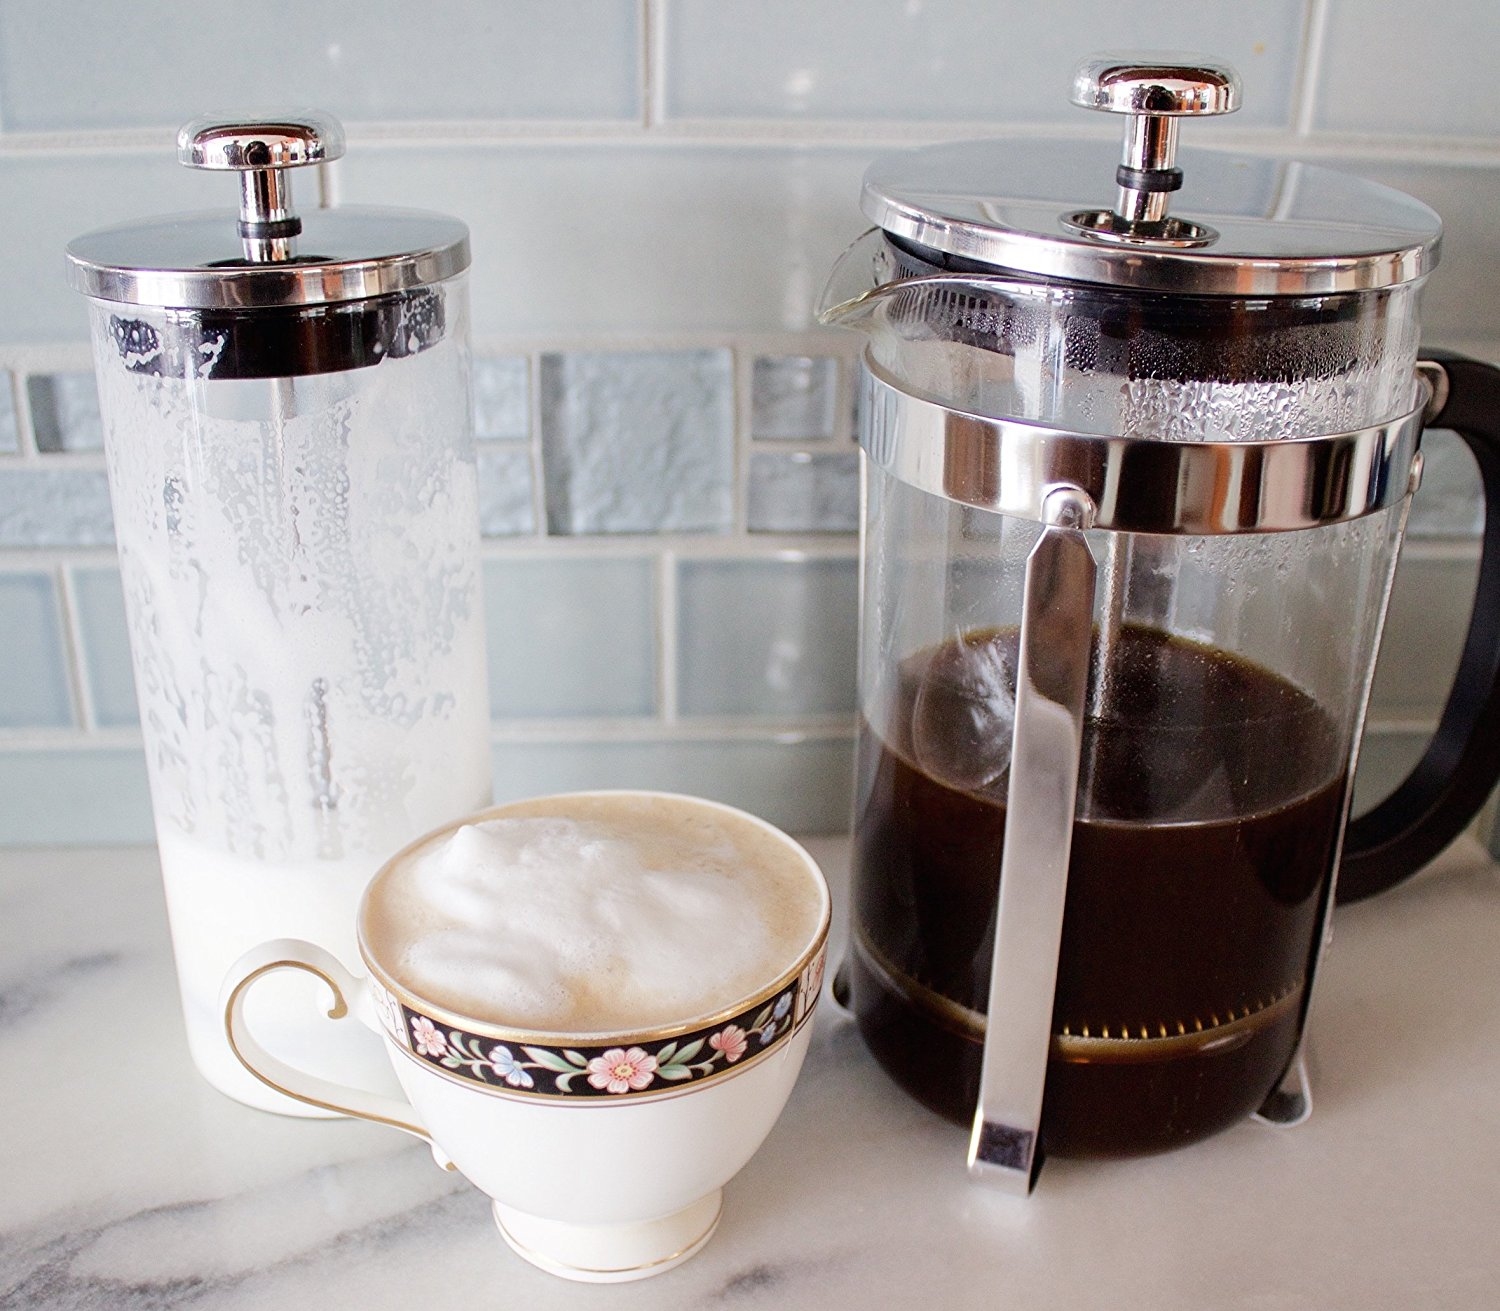 zell french press coffee maker with stainless steel frame and glass milk frother set best price. Black Bedroom Furniture Sets. Home Design Ideas